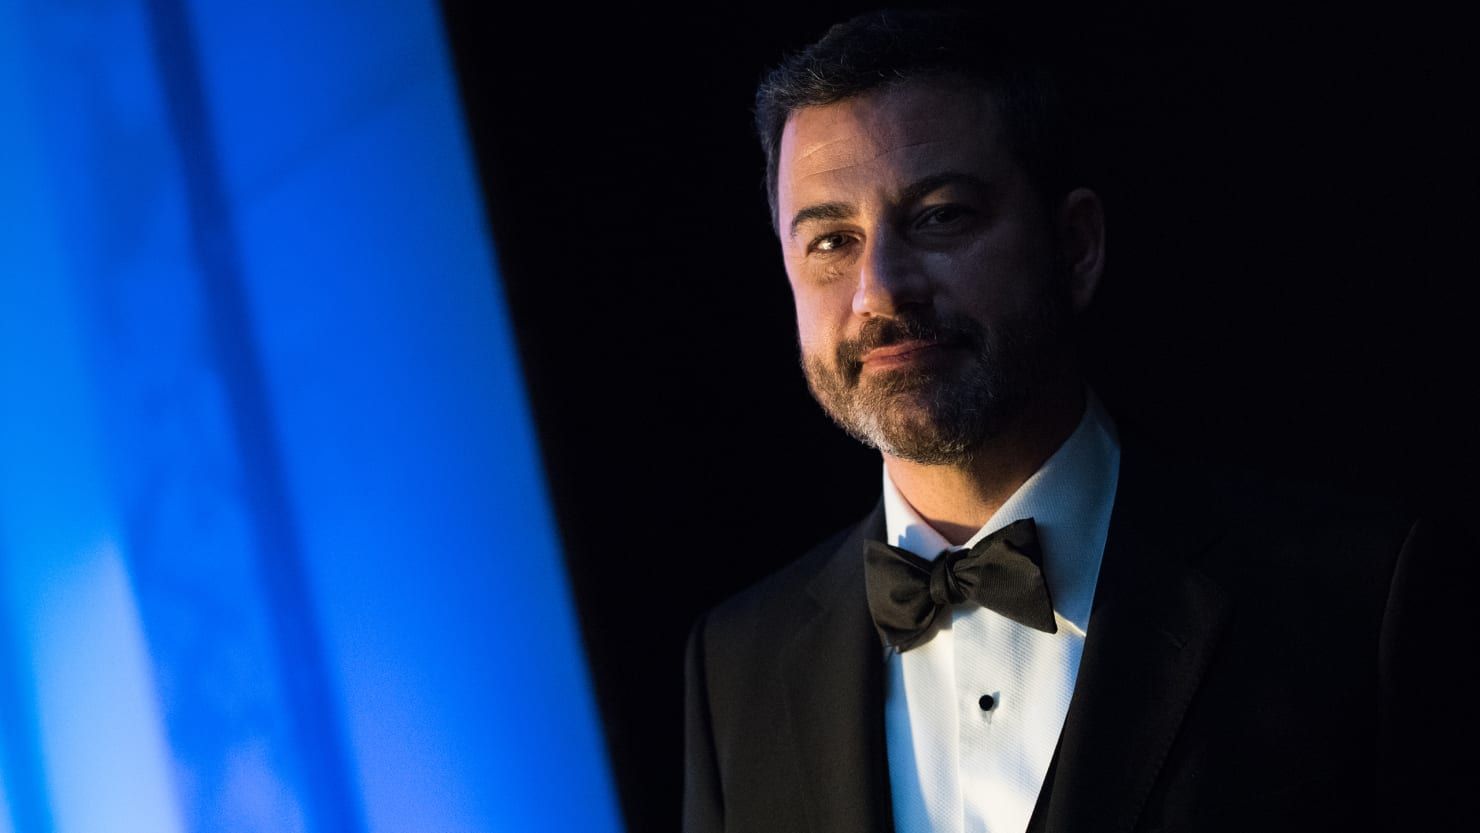 Jimmy Kimmel Doesn't Want to 'Appeal' to Trump Fans: 'I Don't Think That World Exists Anymore'